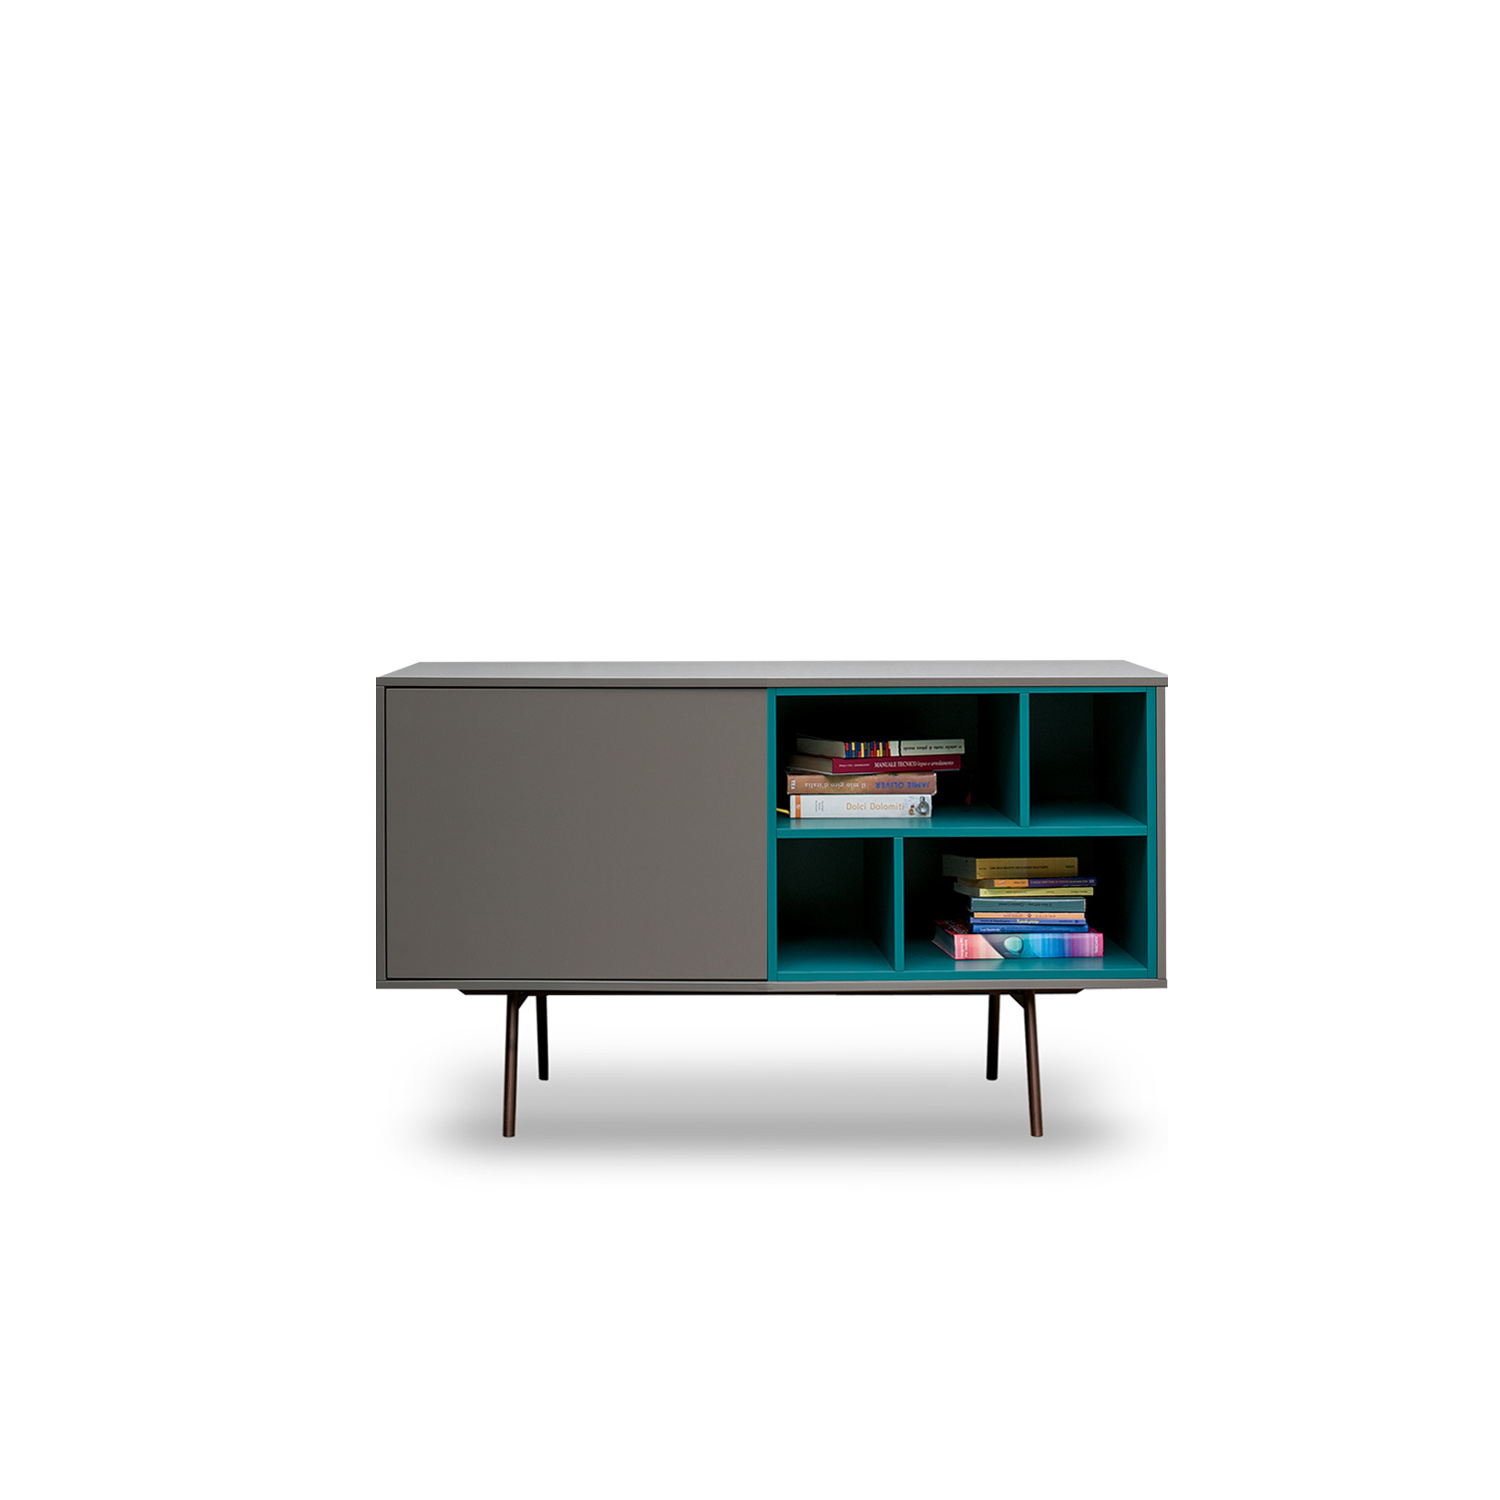 italian-contemporary-furniture-grey-modern-short-sideboard-for-dining-and-living-room-by-dallagnese.jpg